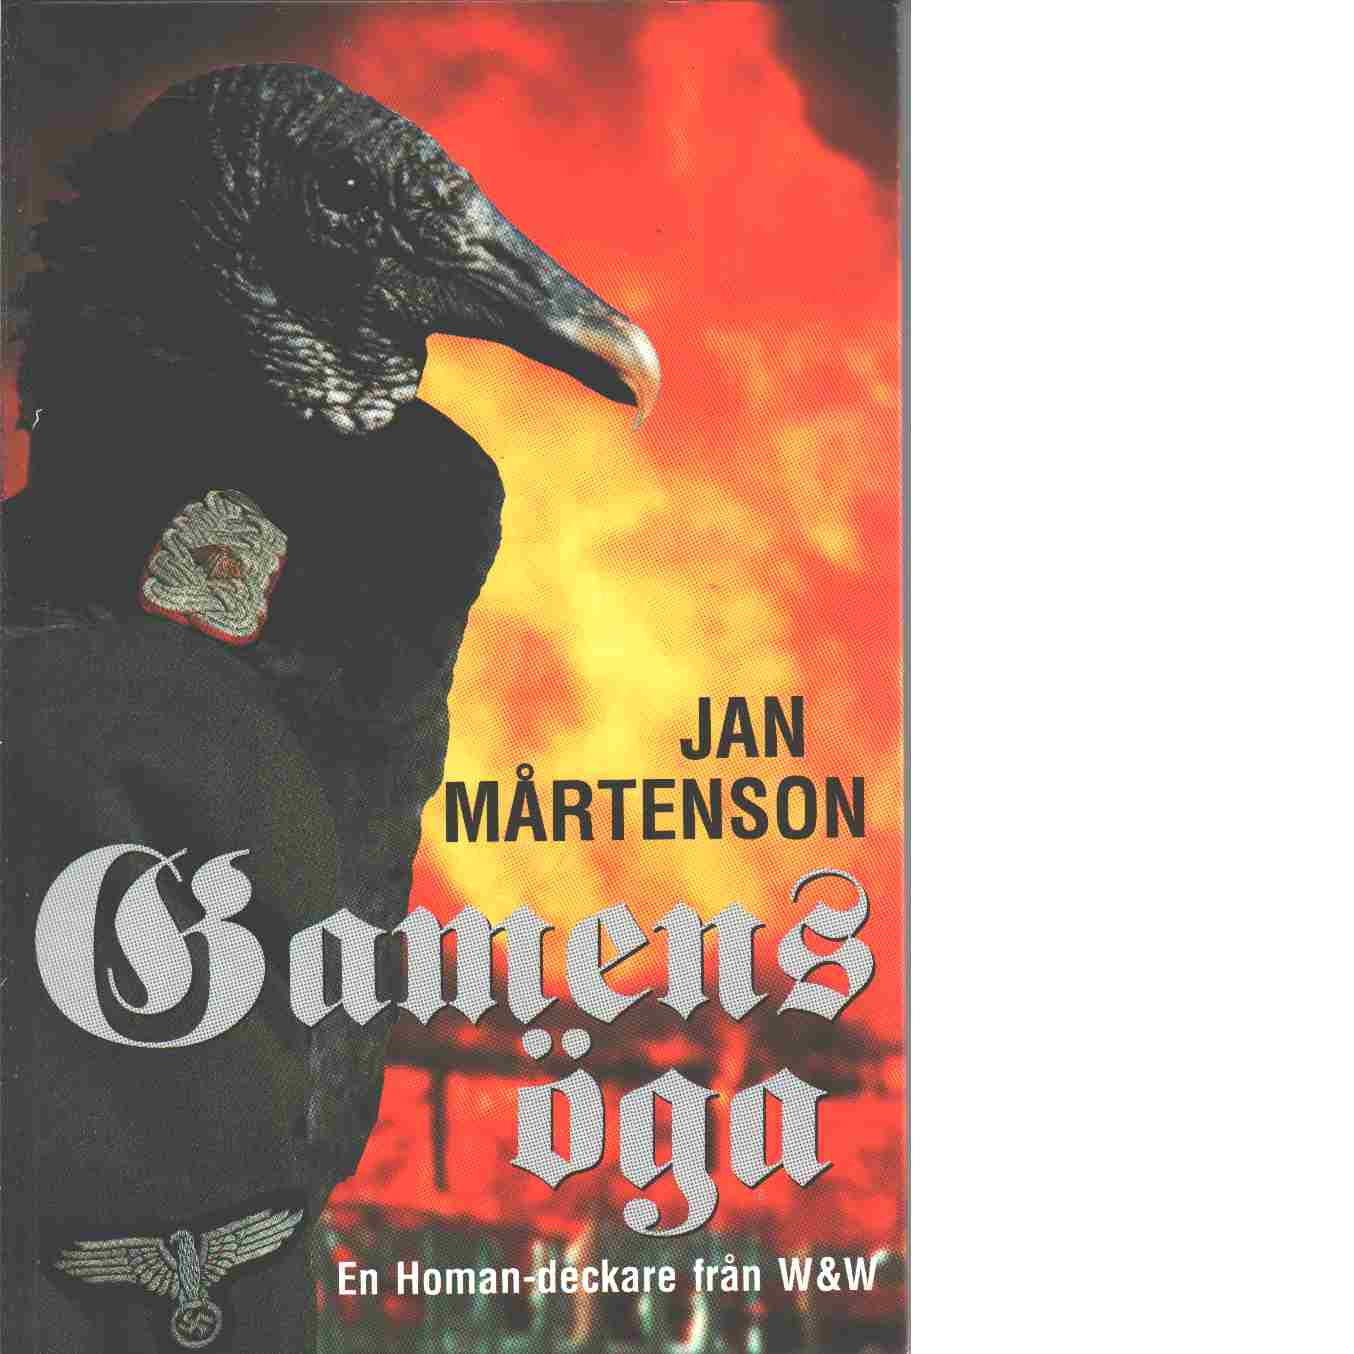 Gamens öga - Mårtenson, Jan